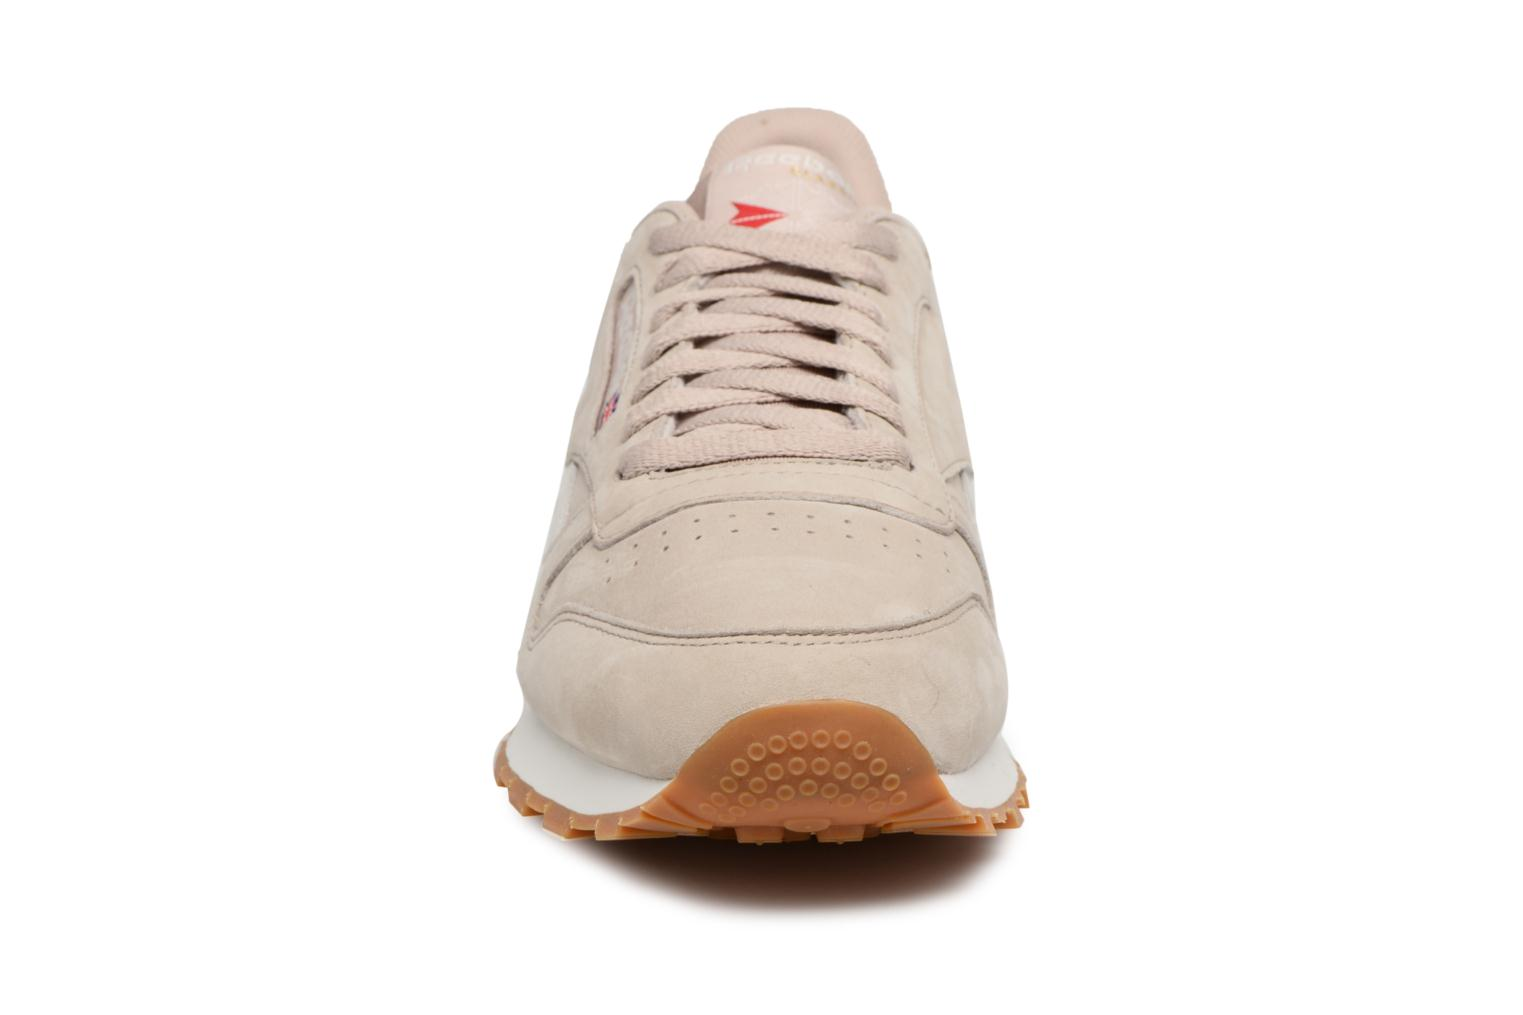 Soapstone/Chalk/Excellent Red/Gum Reebok ClassicLeather Tl (Vert)